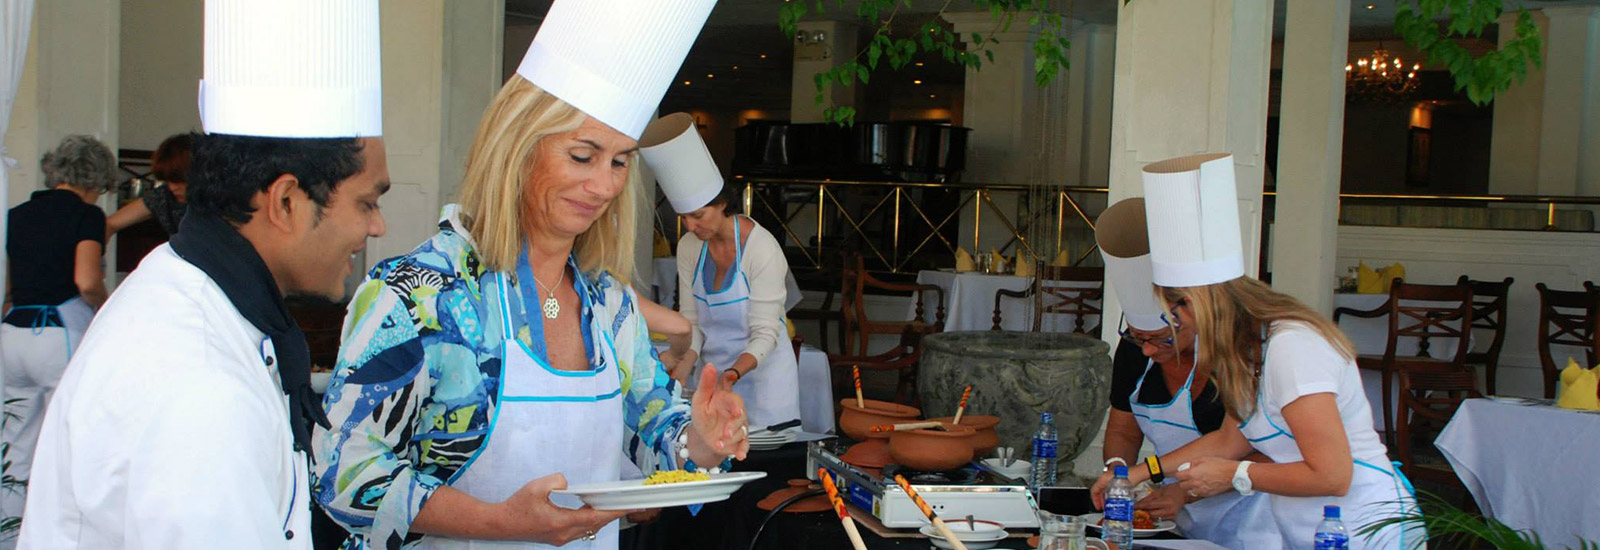 Culinary-Expeditions-2-1600x550